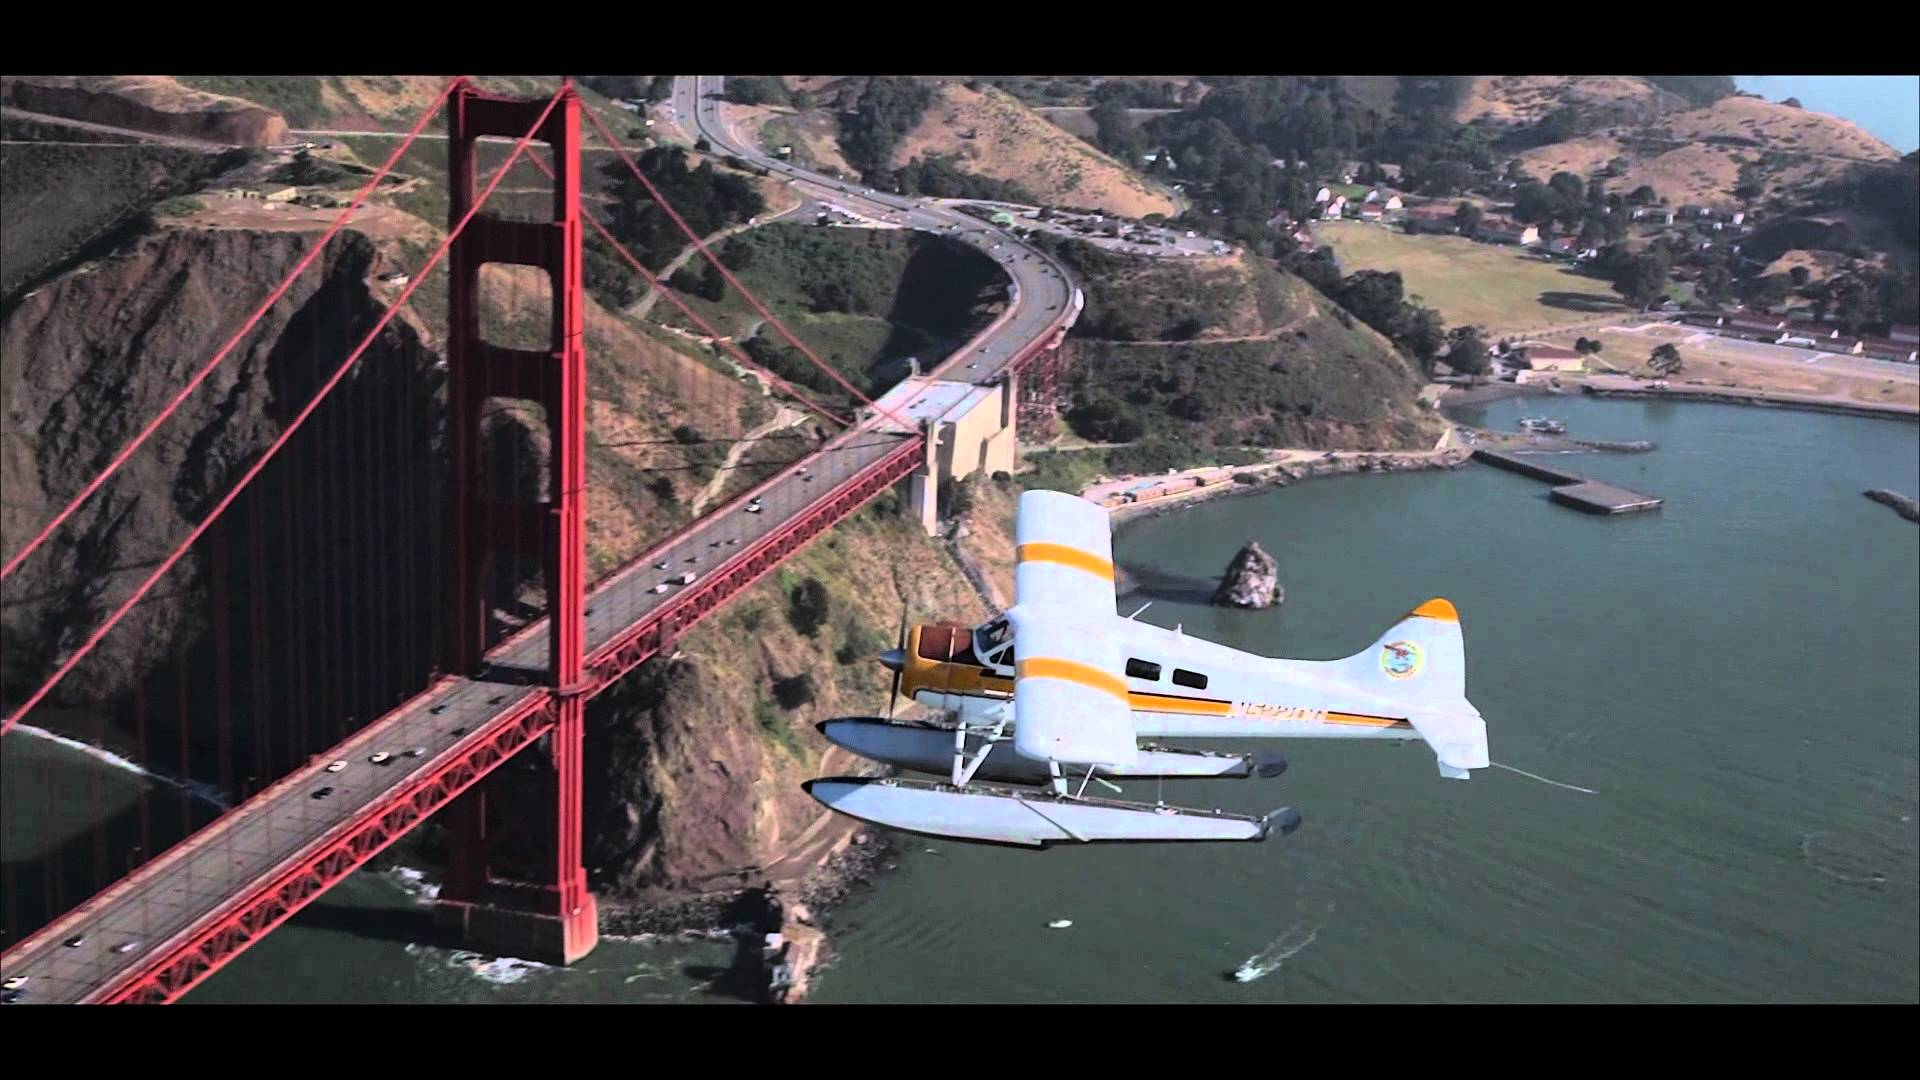 Excursions Flights From Sausalito To Lake Tahoe Arrive